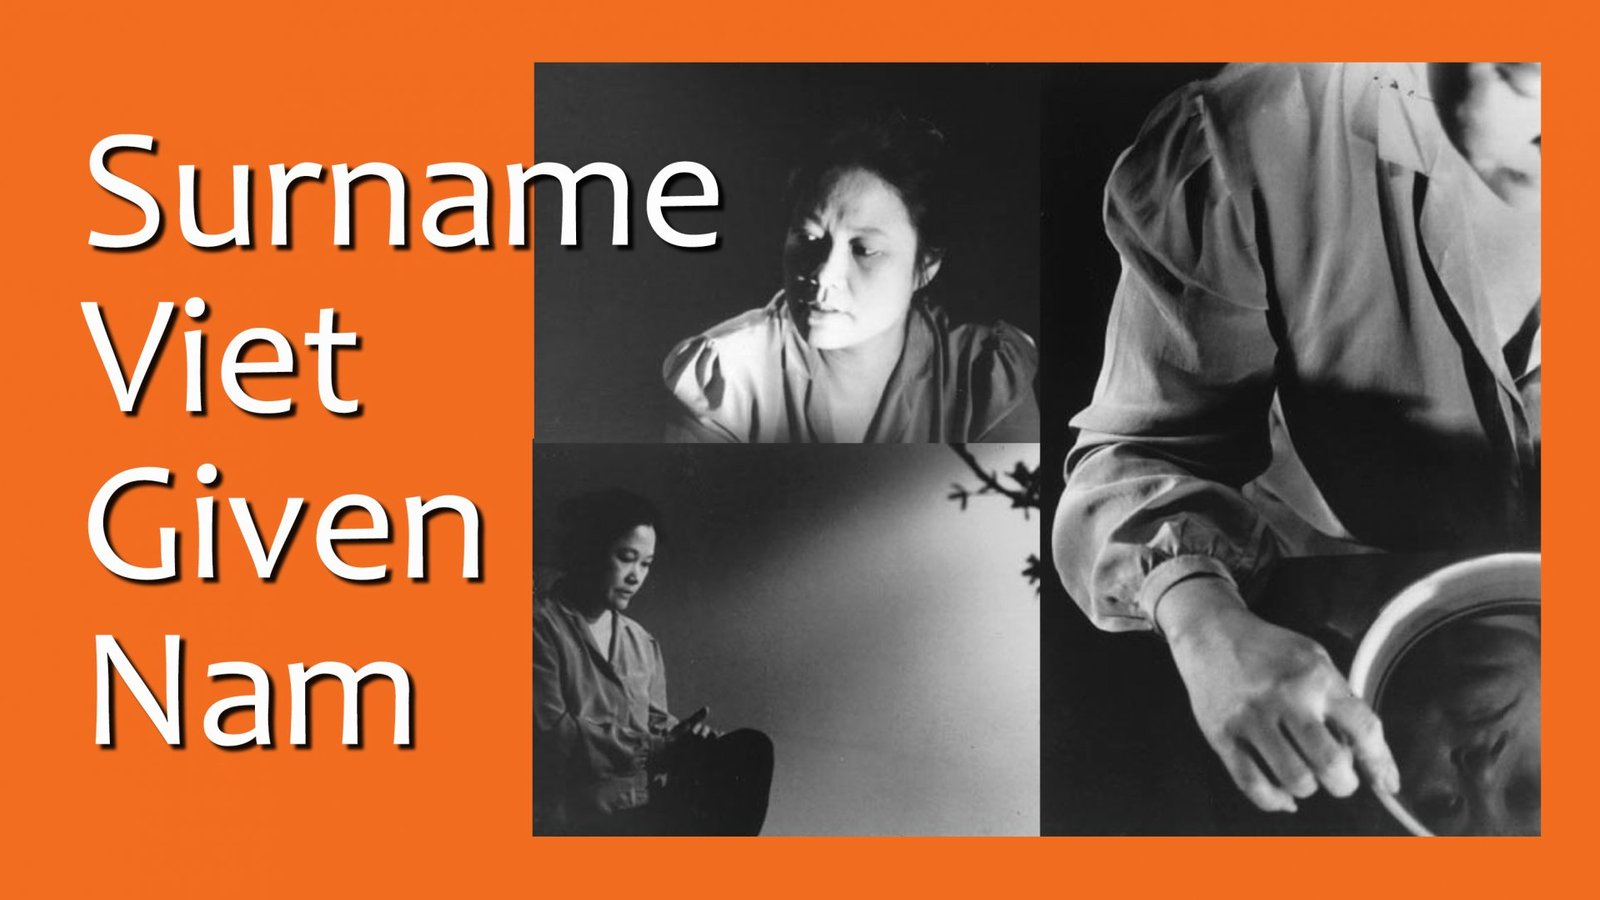 Surname Viet Given Name Nam - The Role of Vietnamese Women in Society